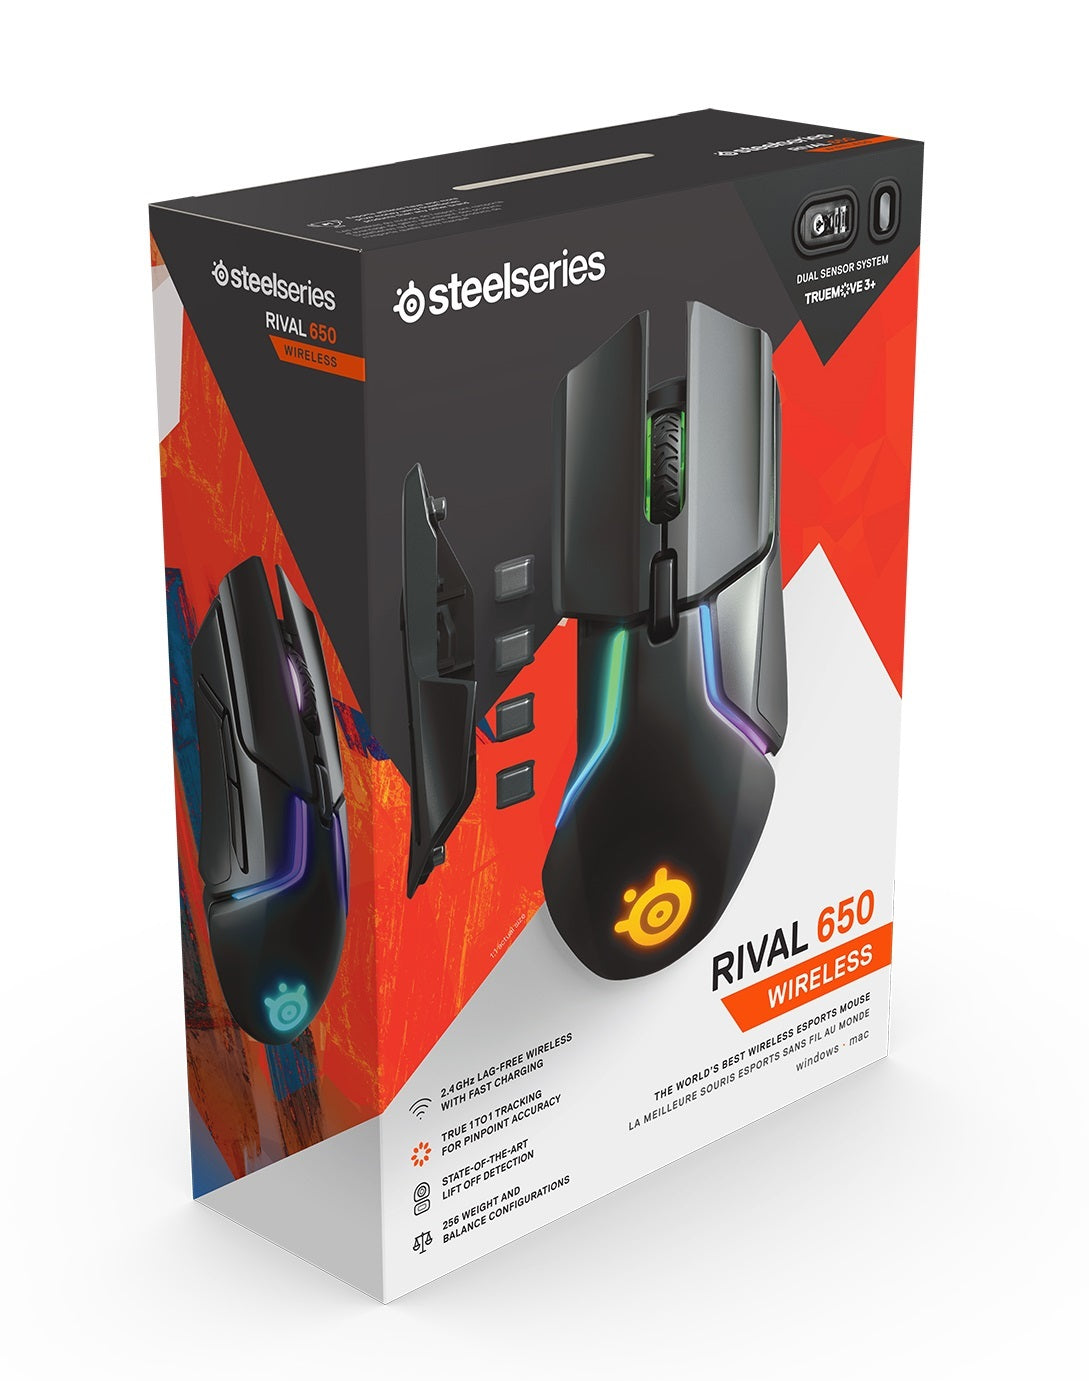 Steelseries Rival 650 Wireless Gaming Mouse - PC Games